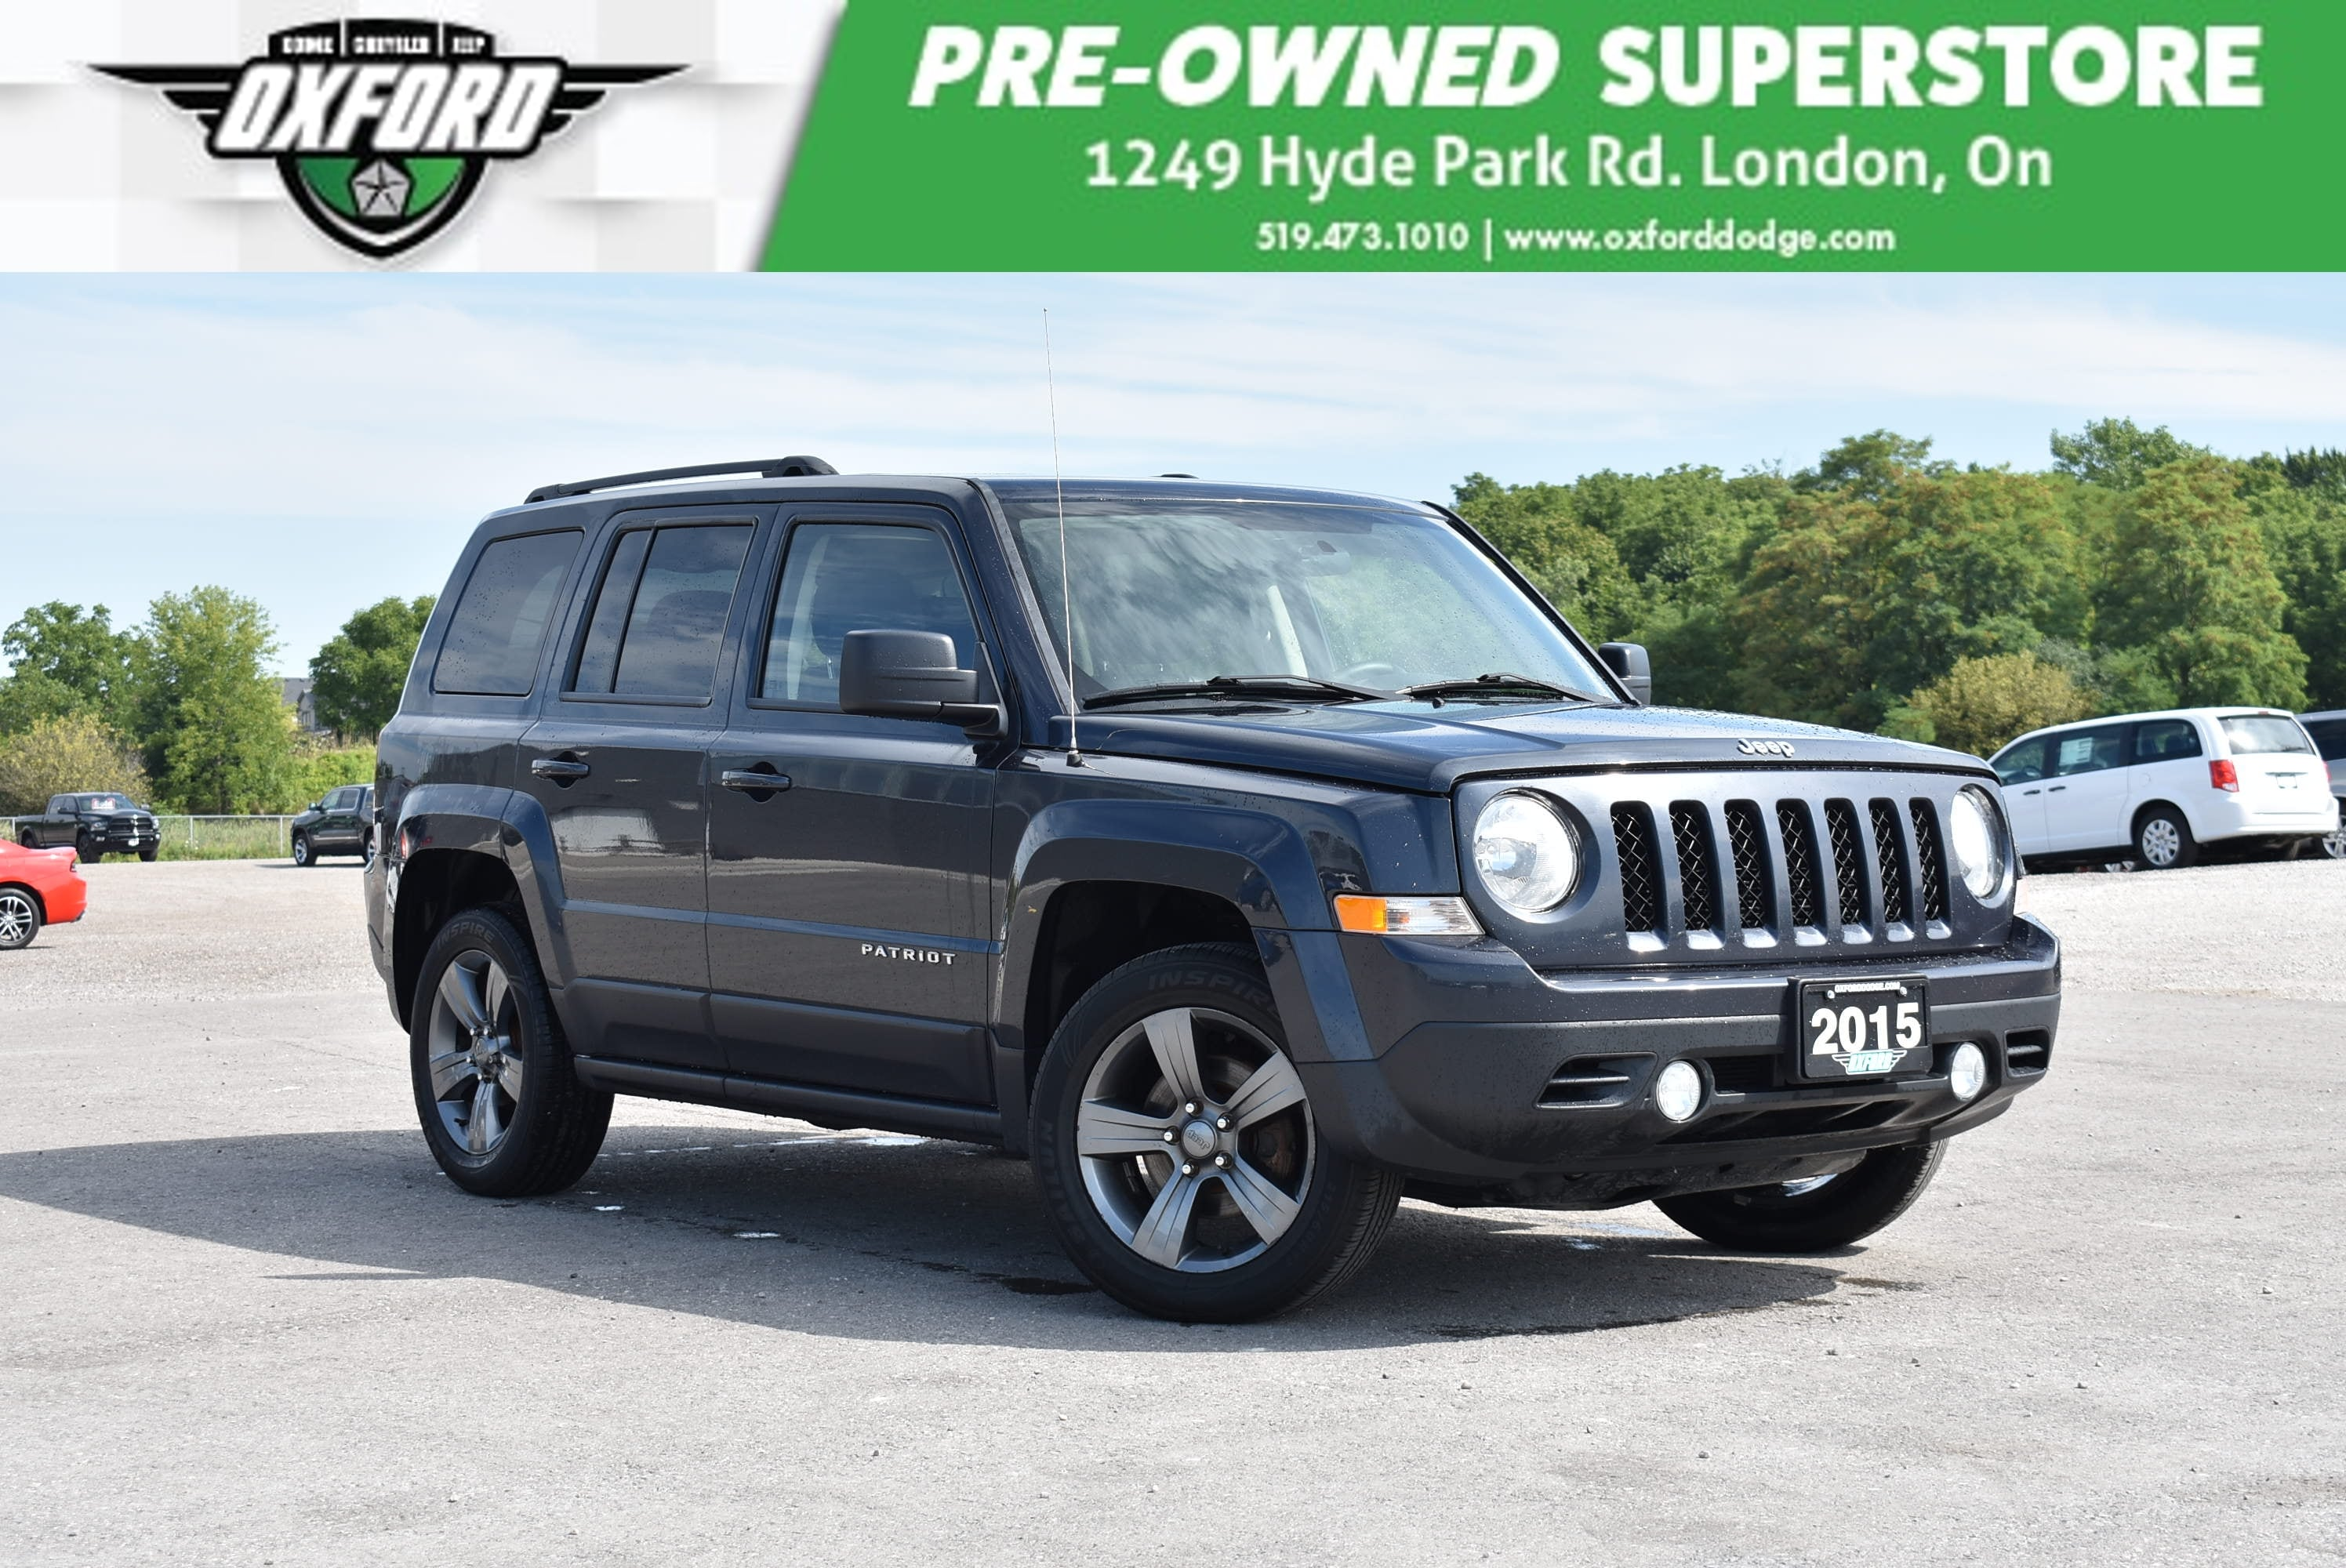 used 2015 Jeep Patriot car, priced at $11,988